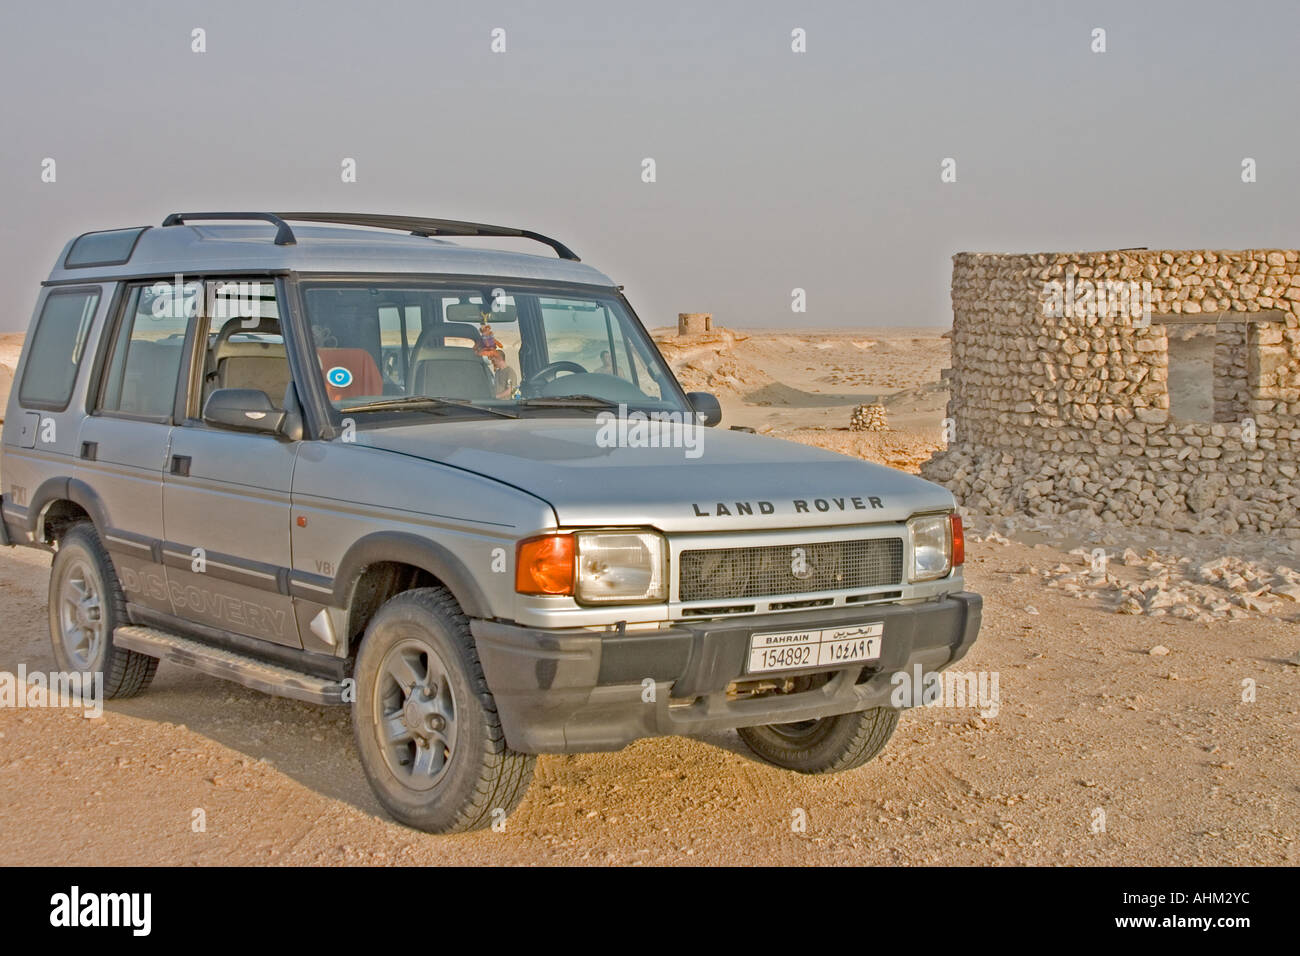 land rover discovery in the desert - Stock Image